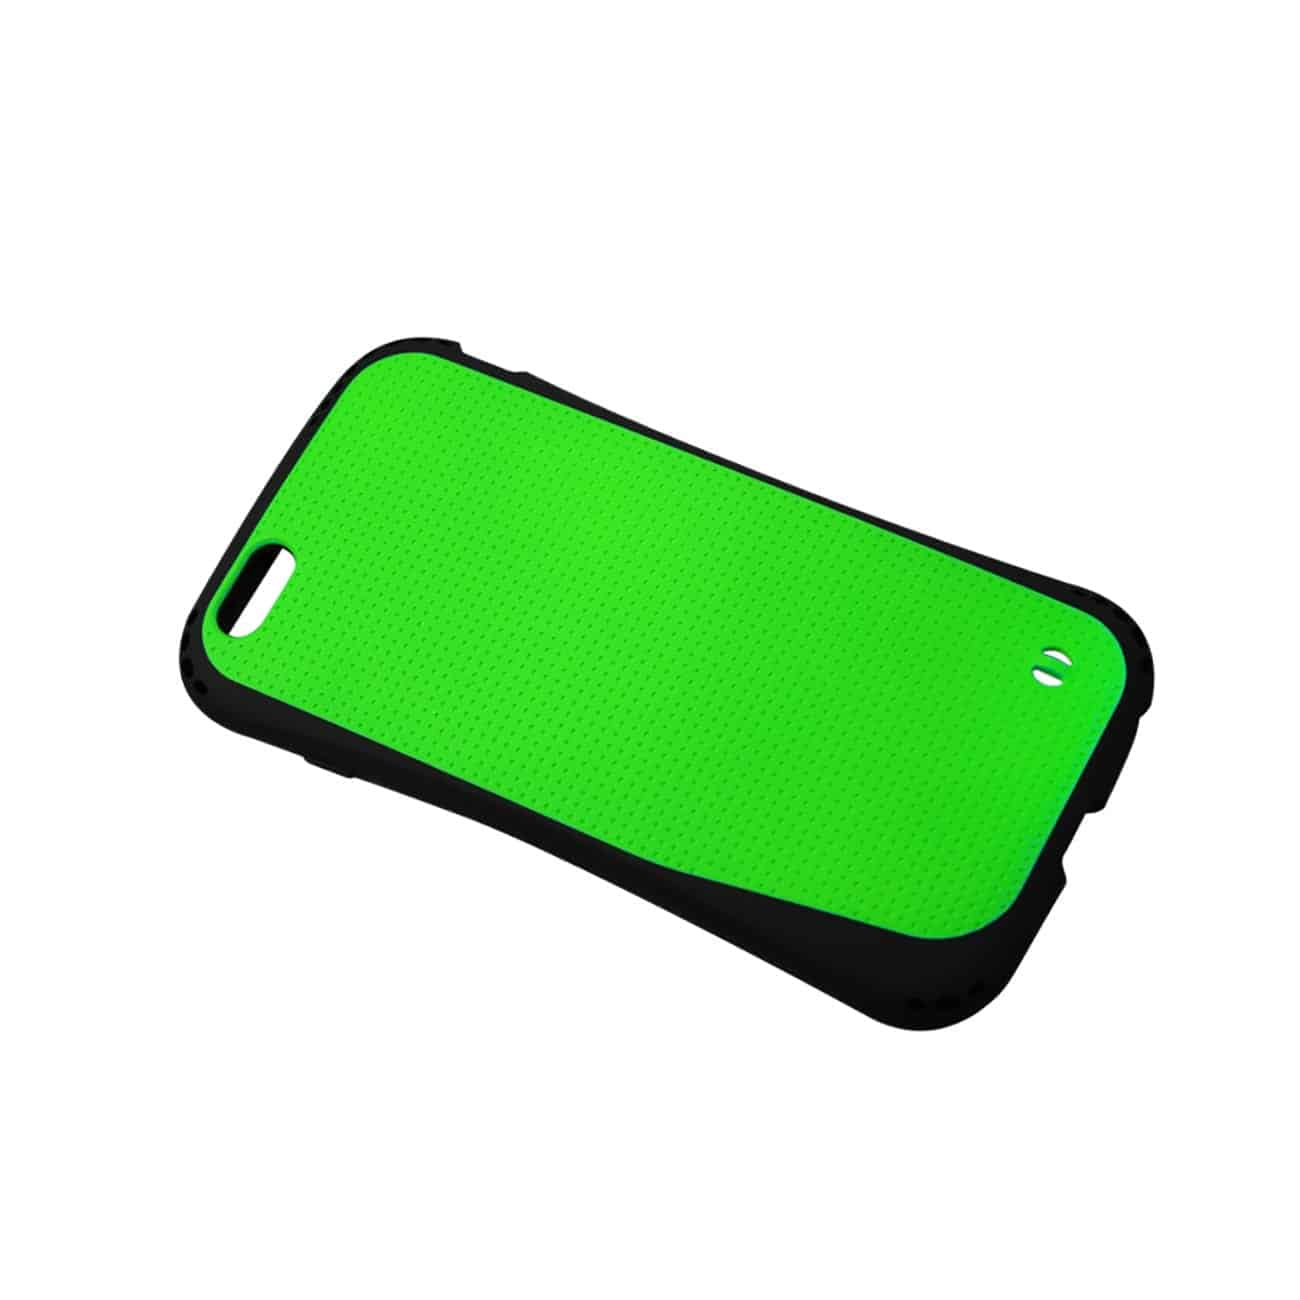 IPHONE 6 PLUS DROPPROOF AIR CUSHION CASE WITH CHAIN HOLE IN GREEN